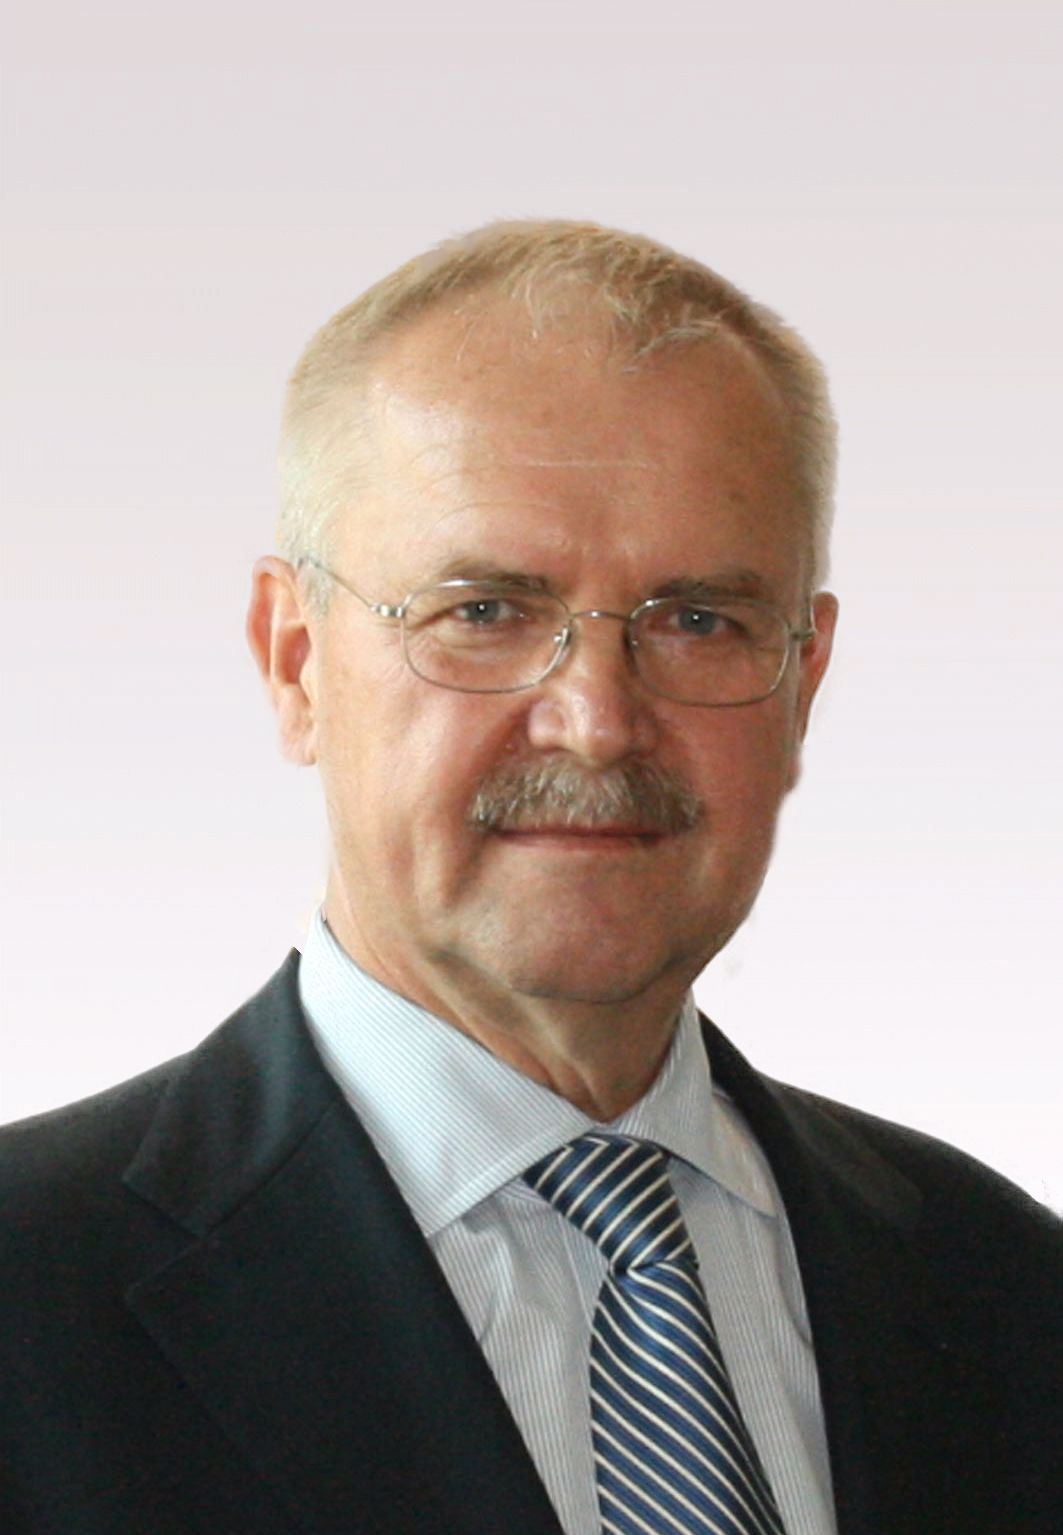 Mr Fritz P. Mayer, new President of CEMATEX. © CEMATEX